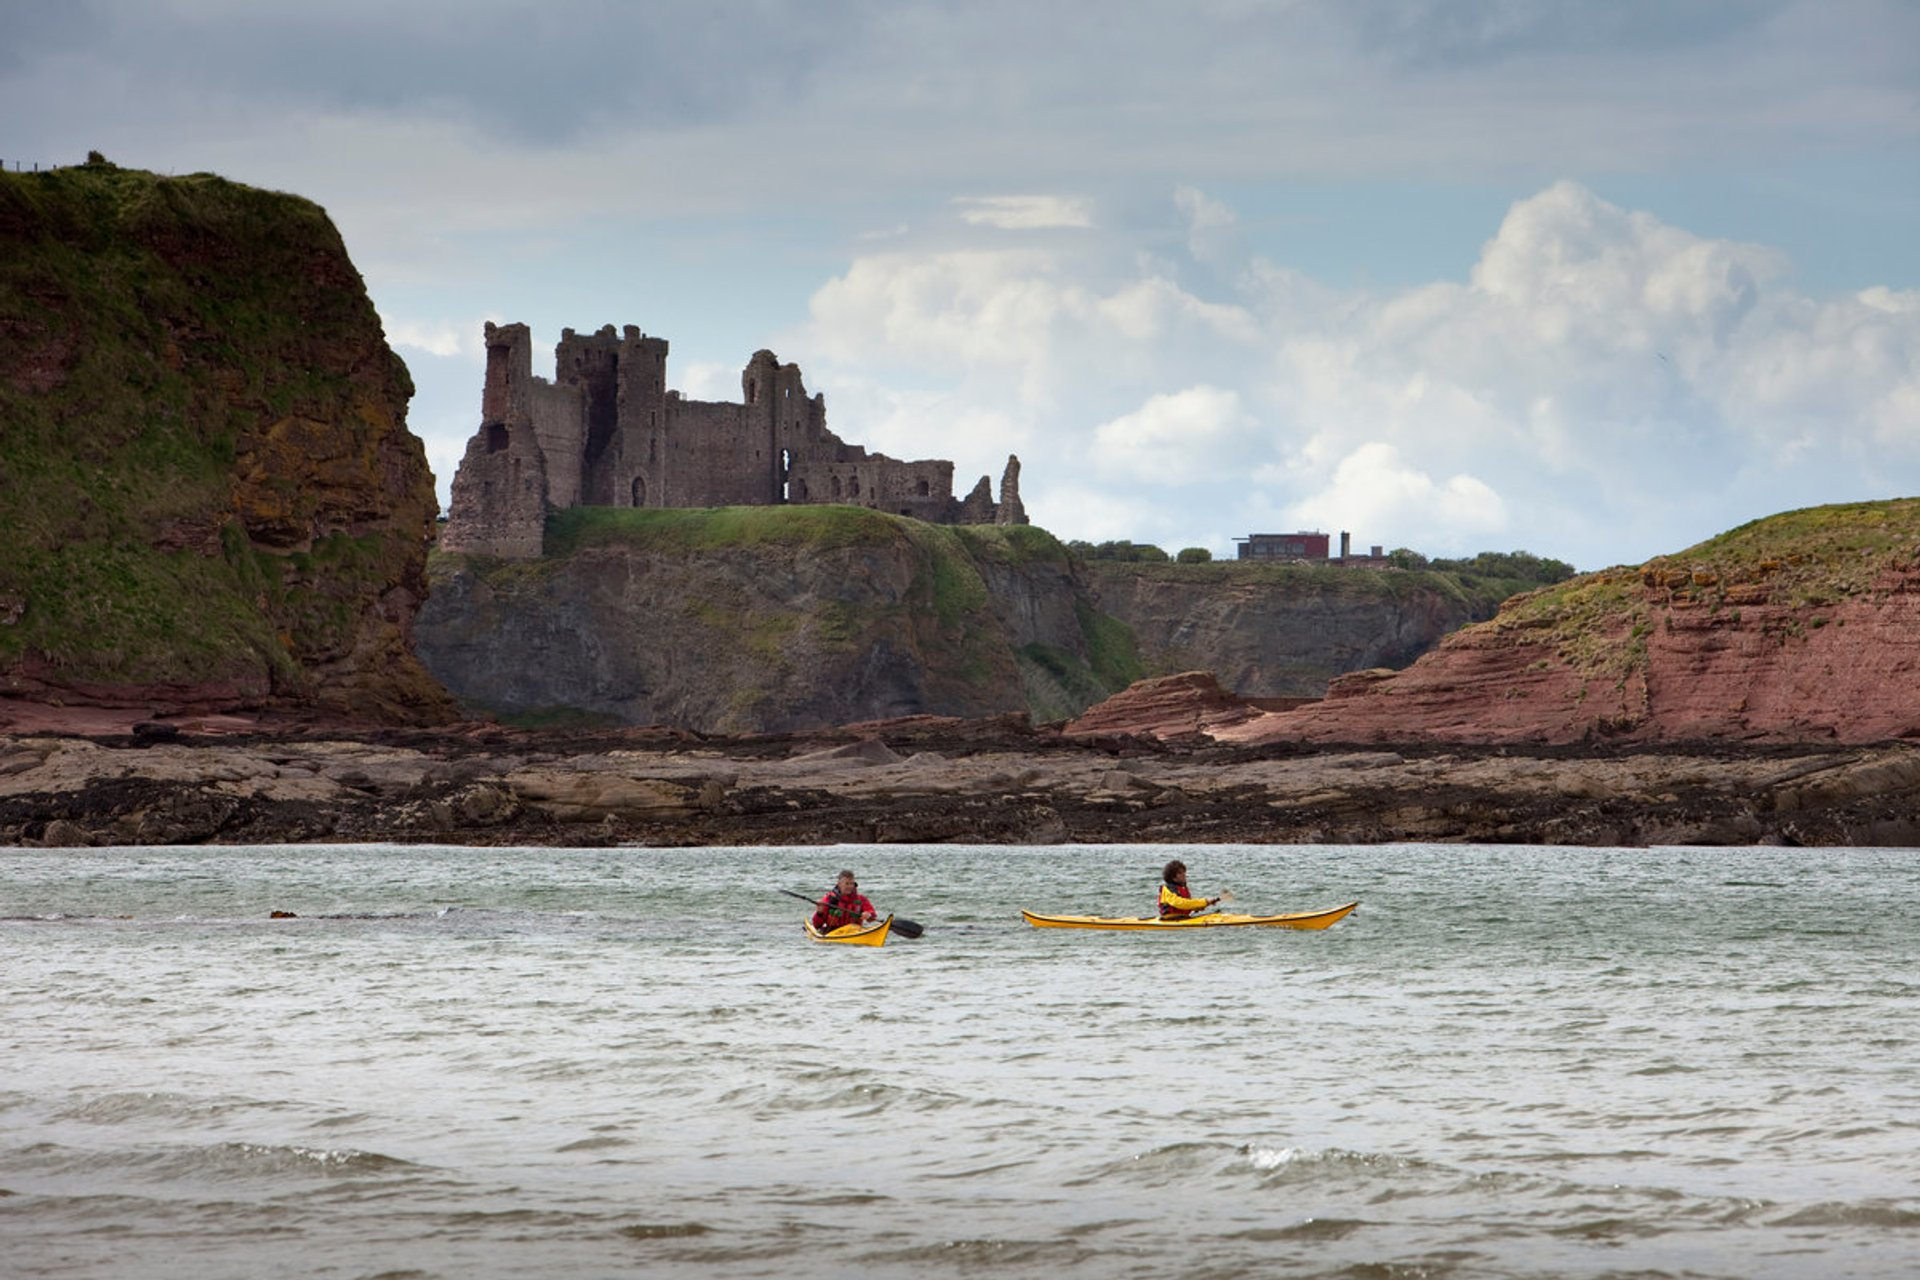 Kayaking with a view of the Castle on the Isle of Lewis